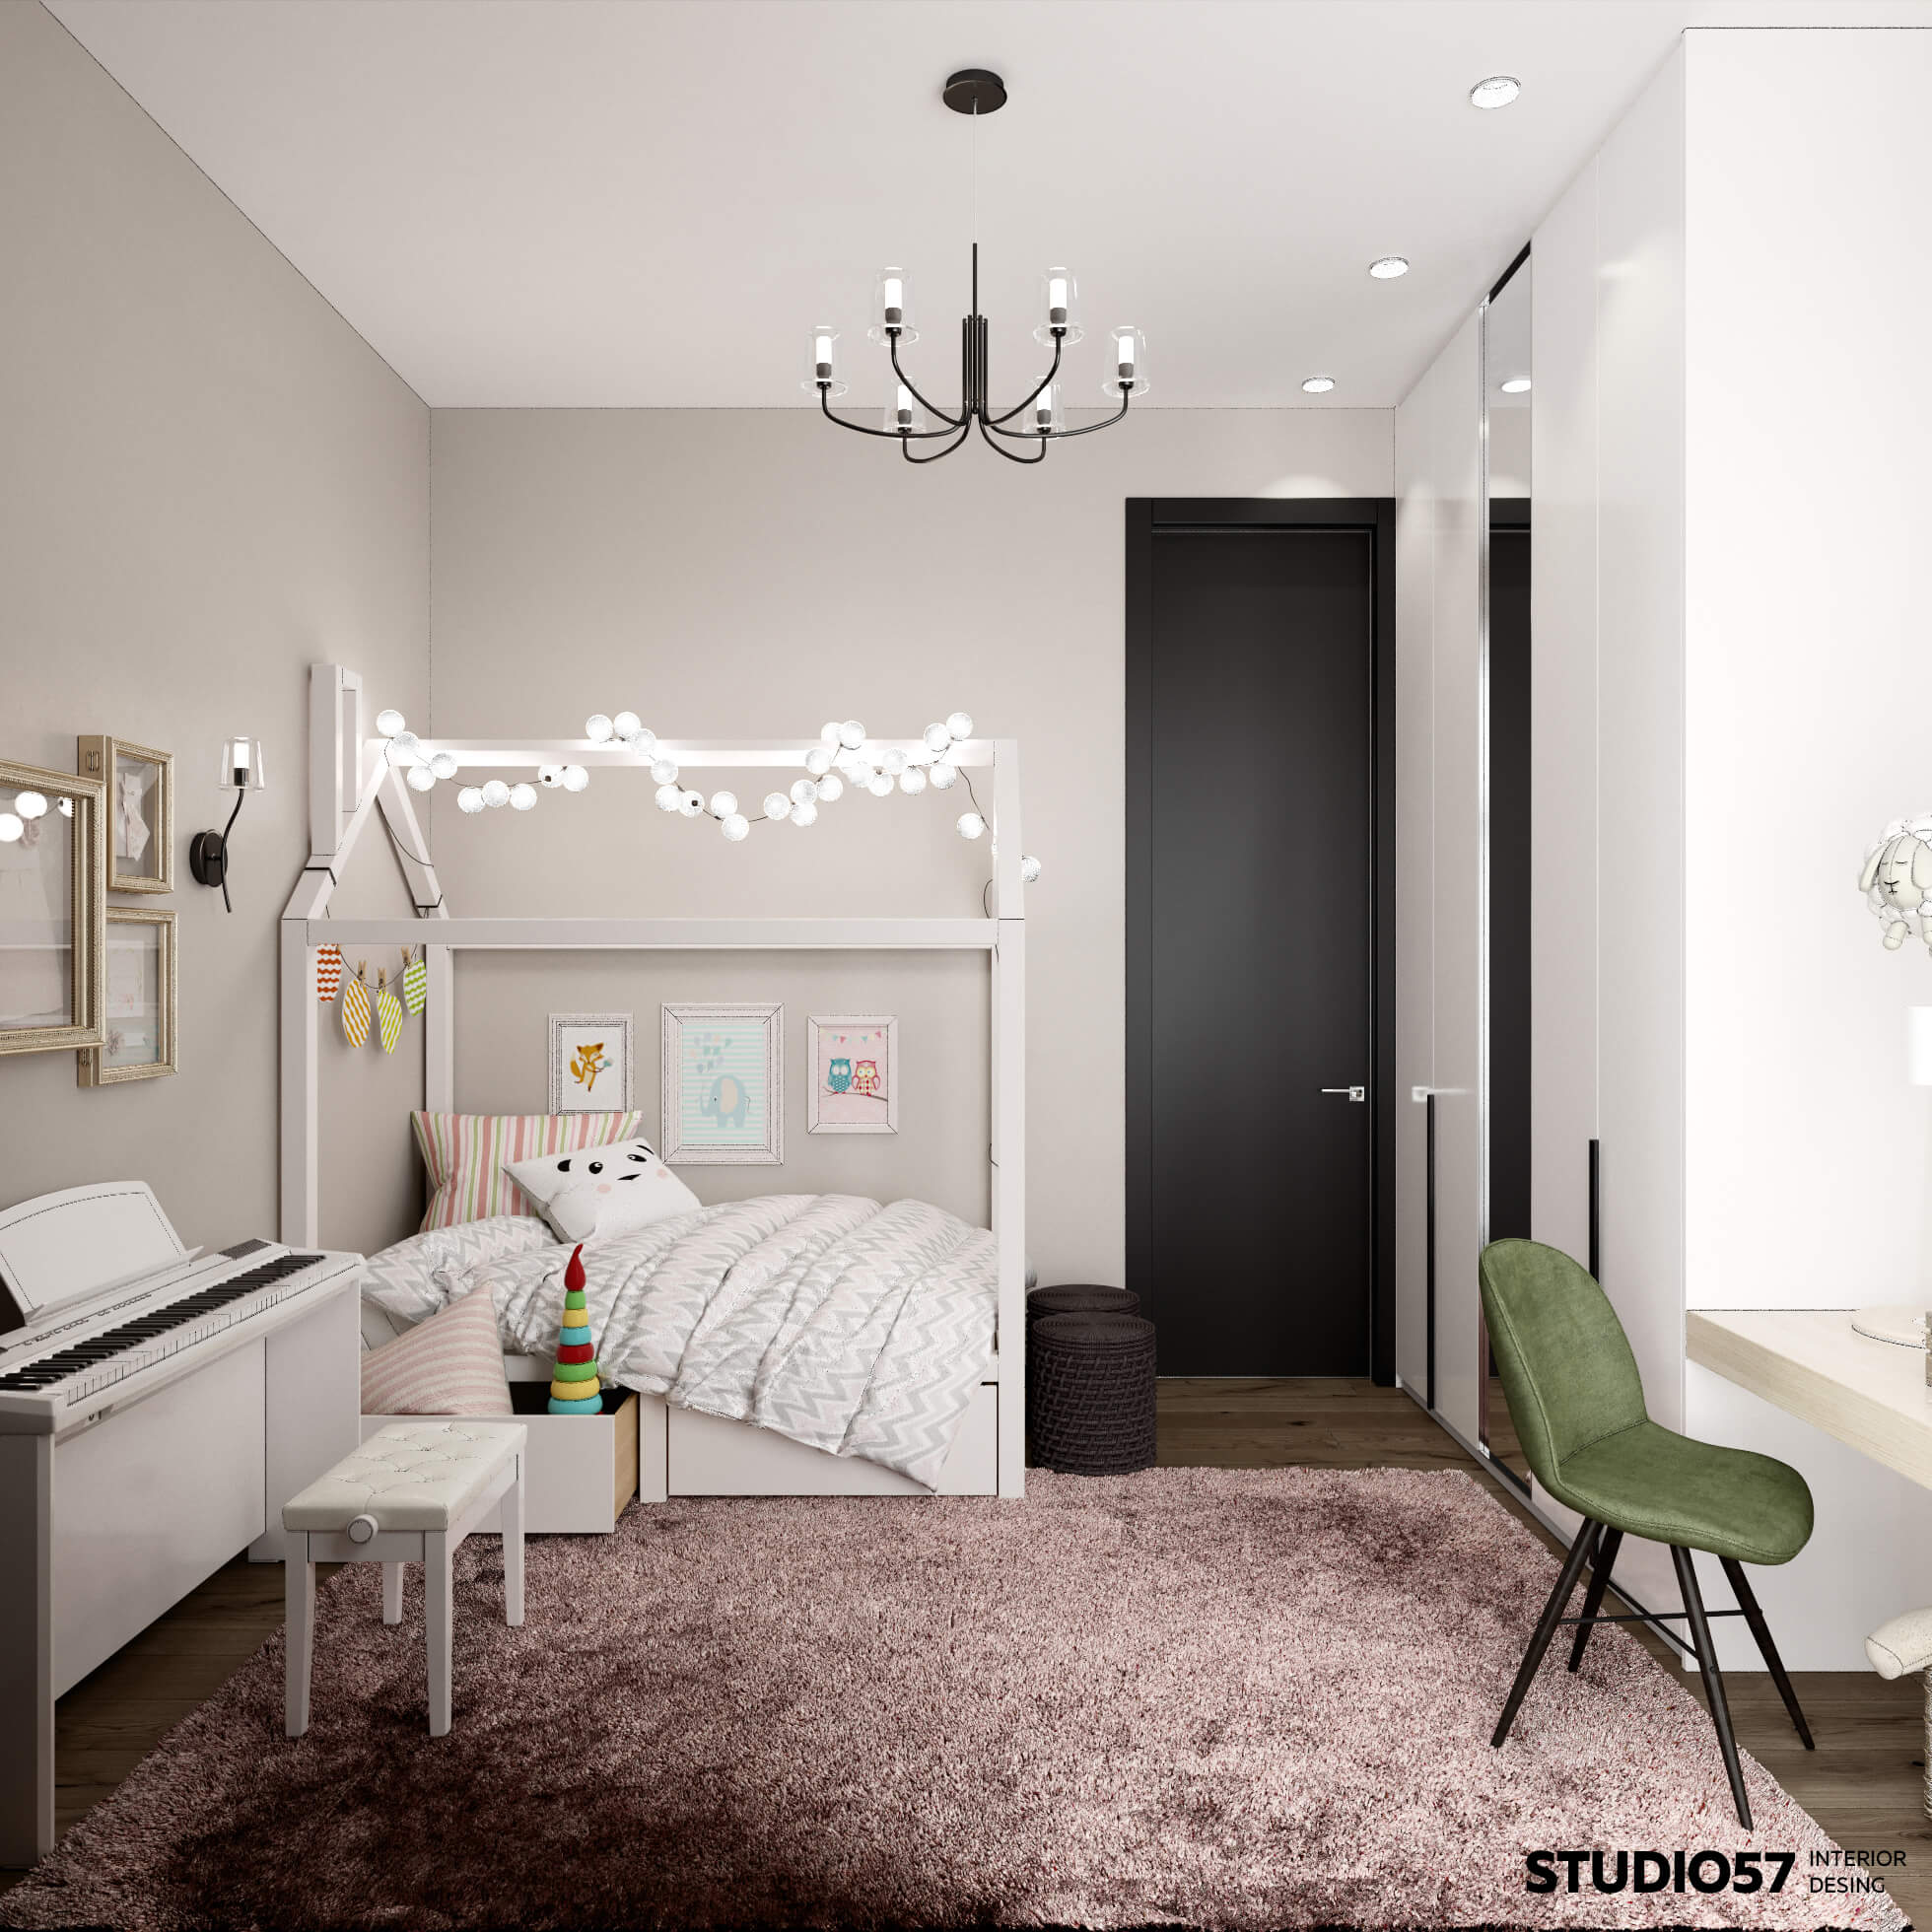 Room design for a little girl